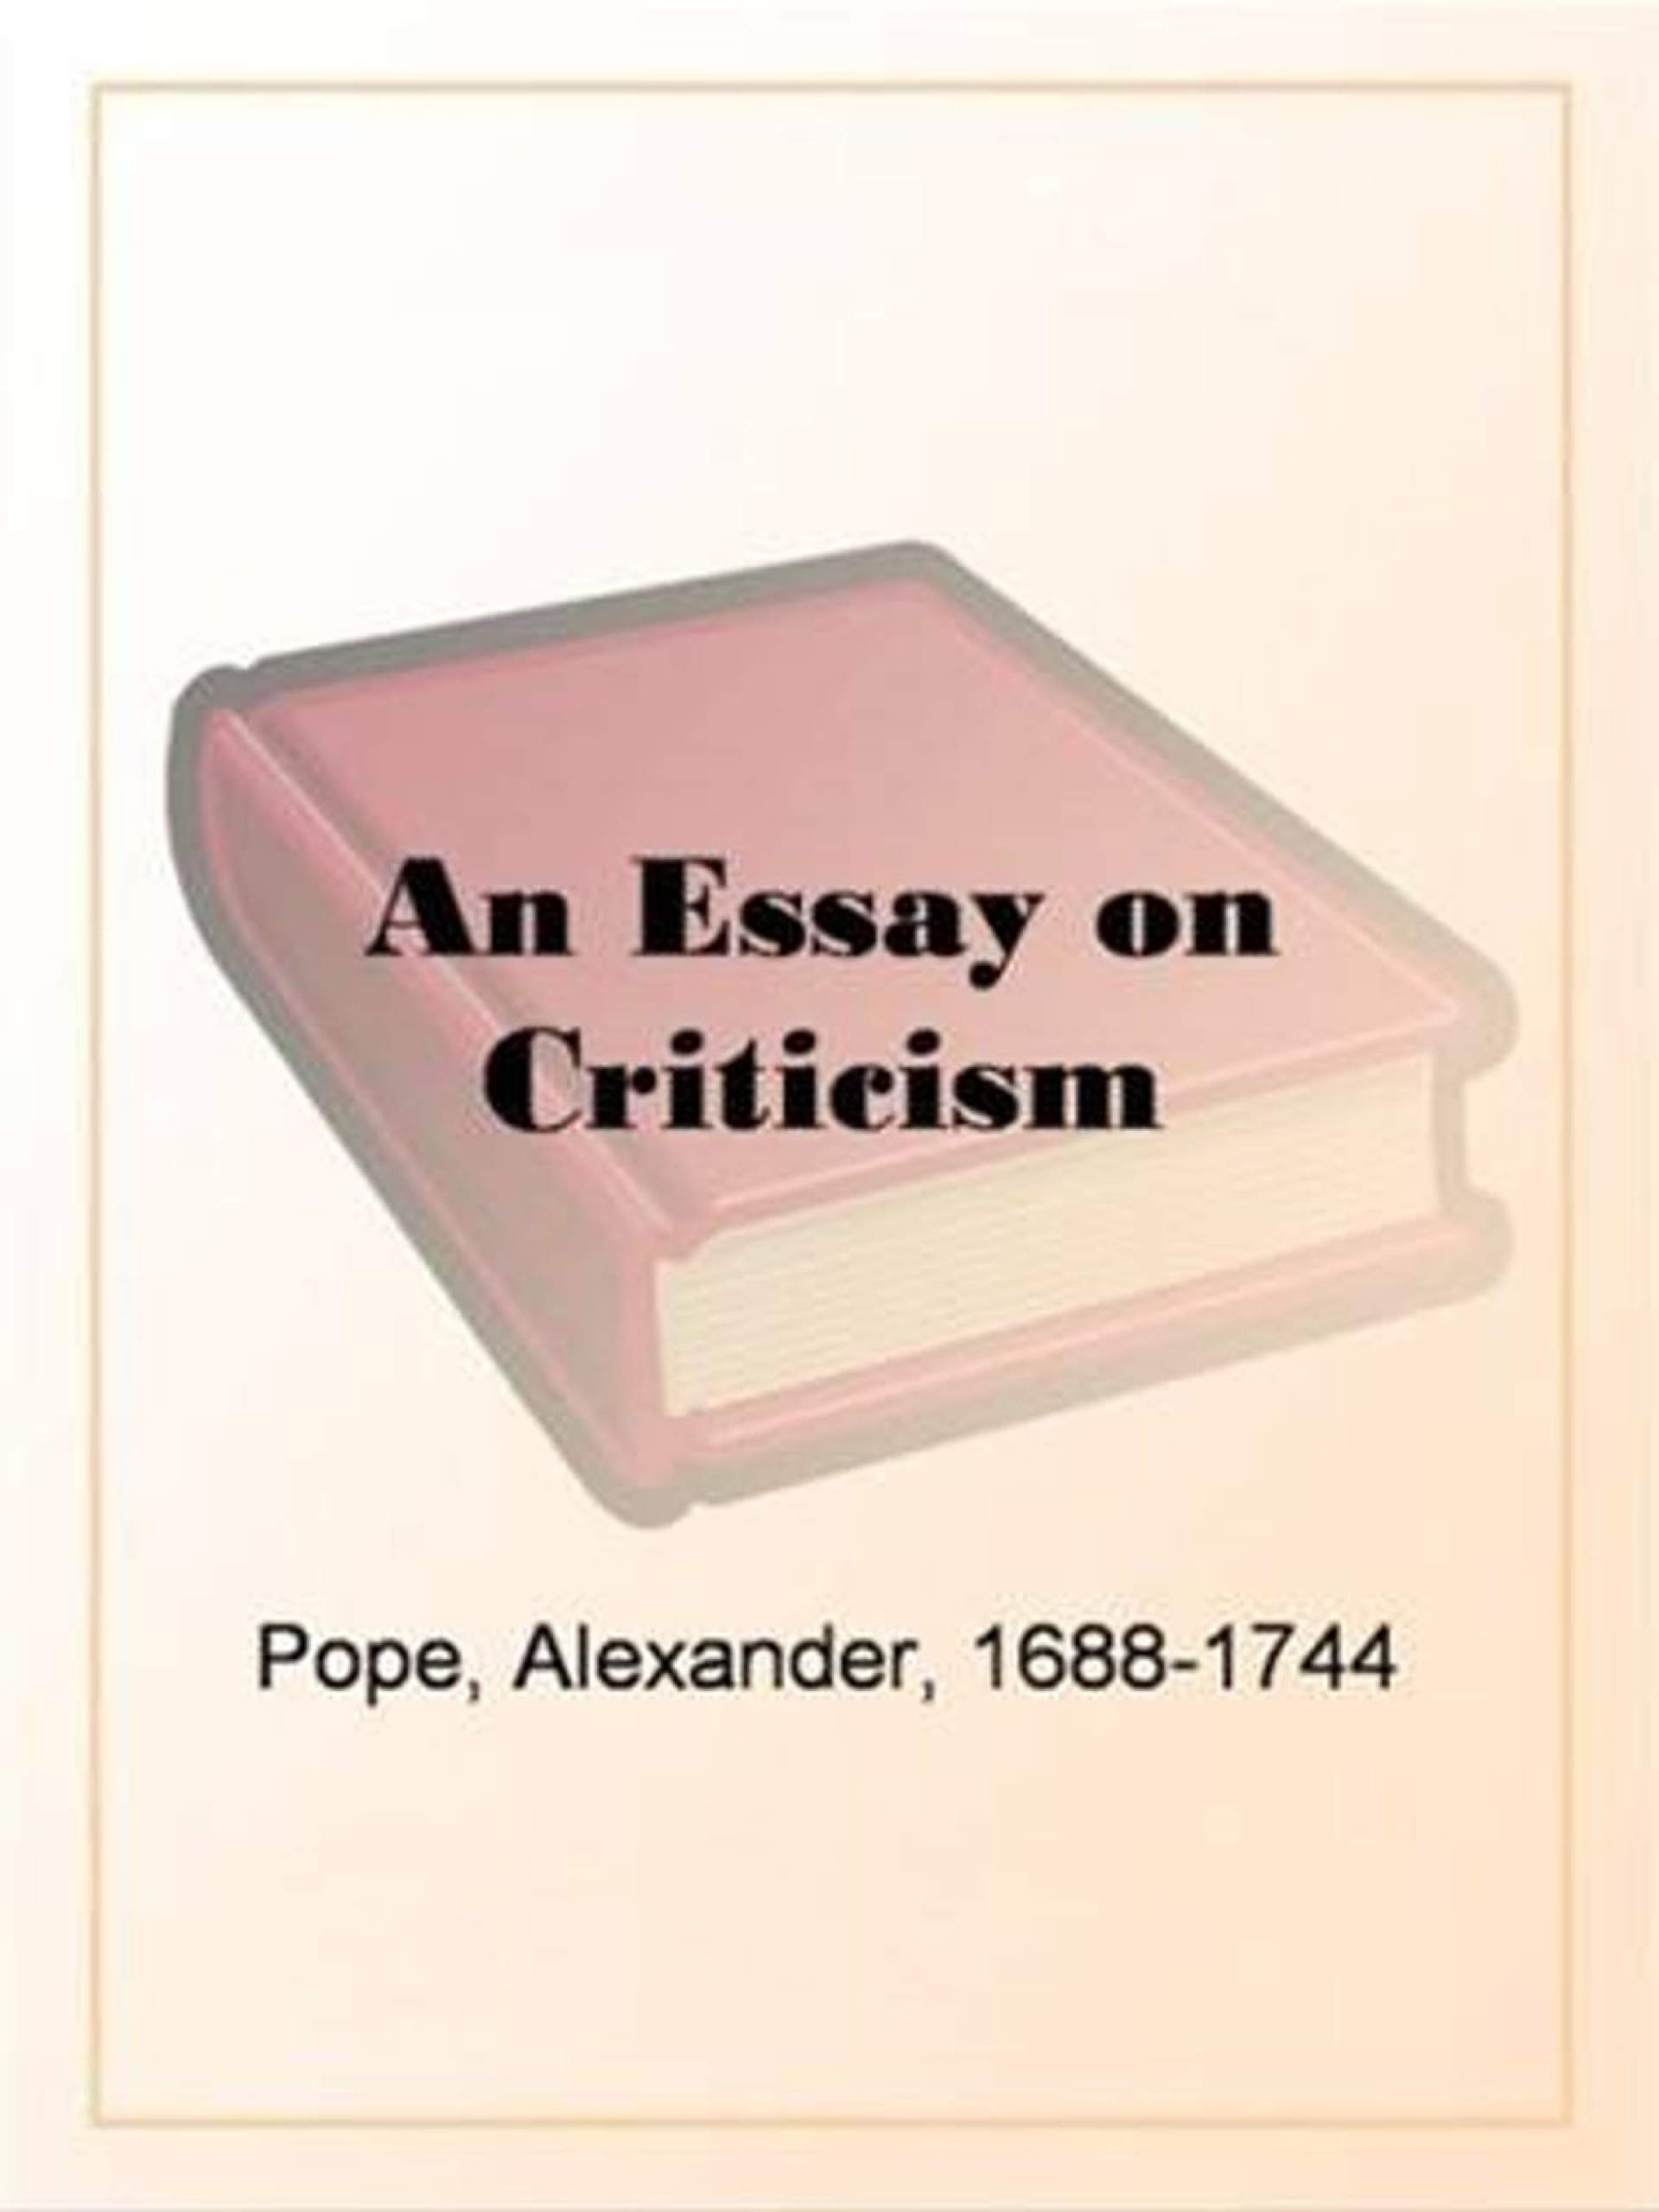 020 An Essay On Criticism Pope Unique Part 2 Pope's Was Written In 1920